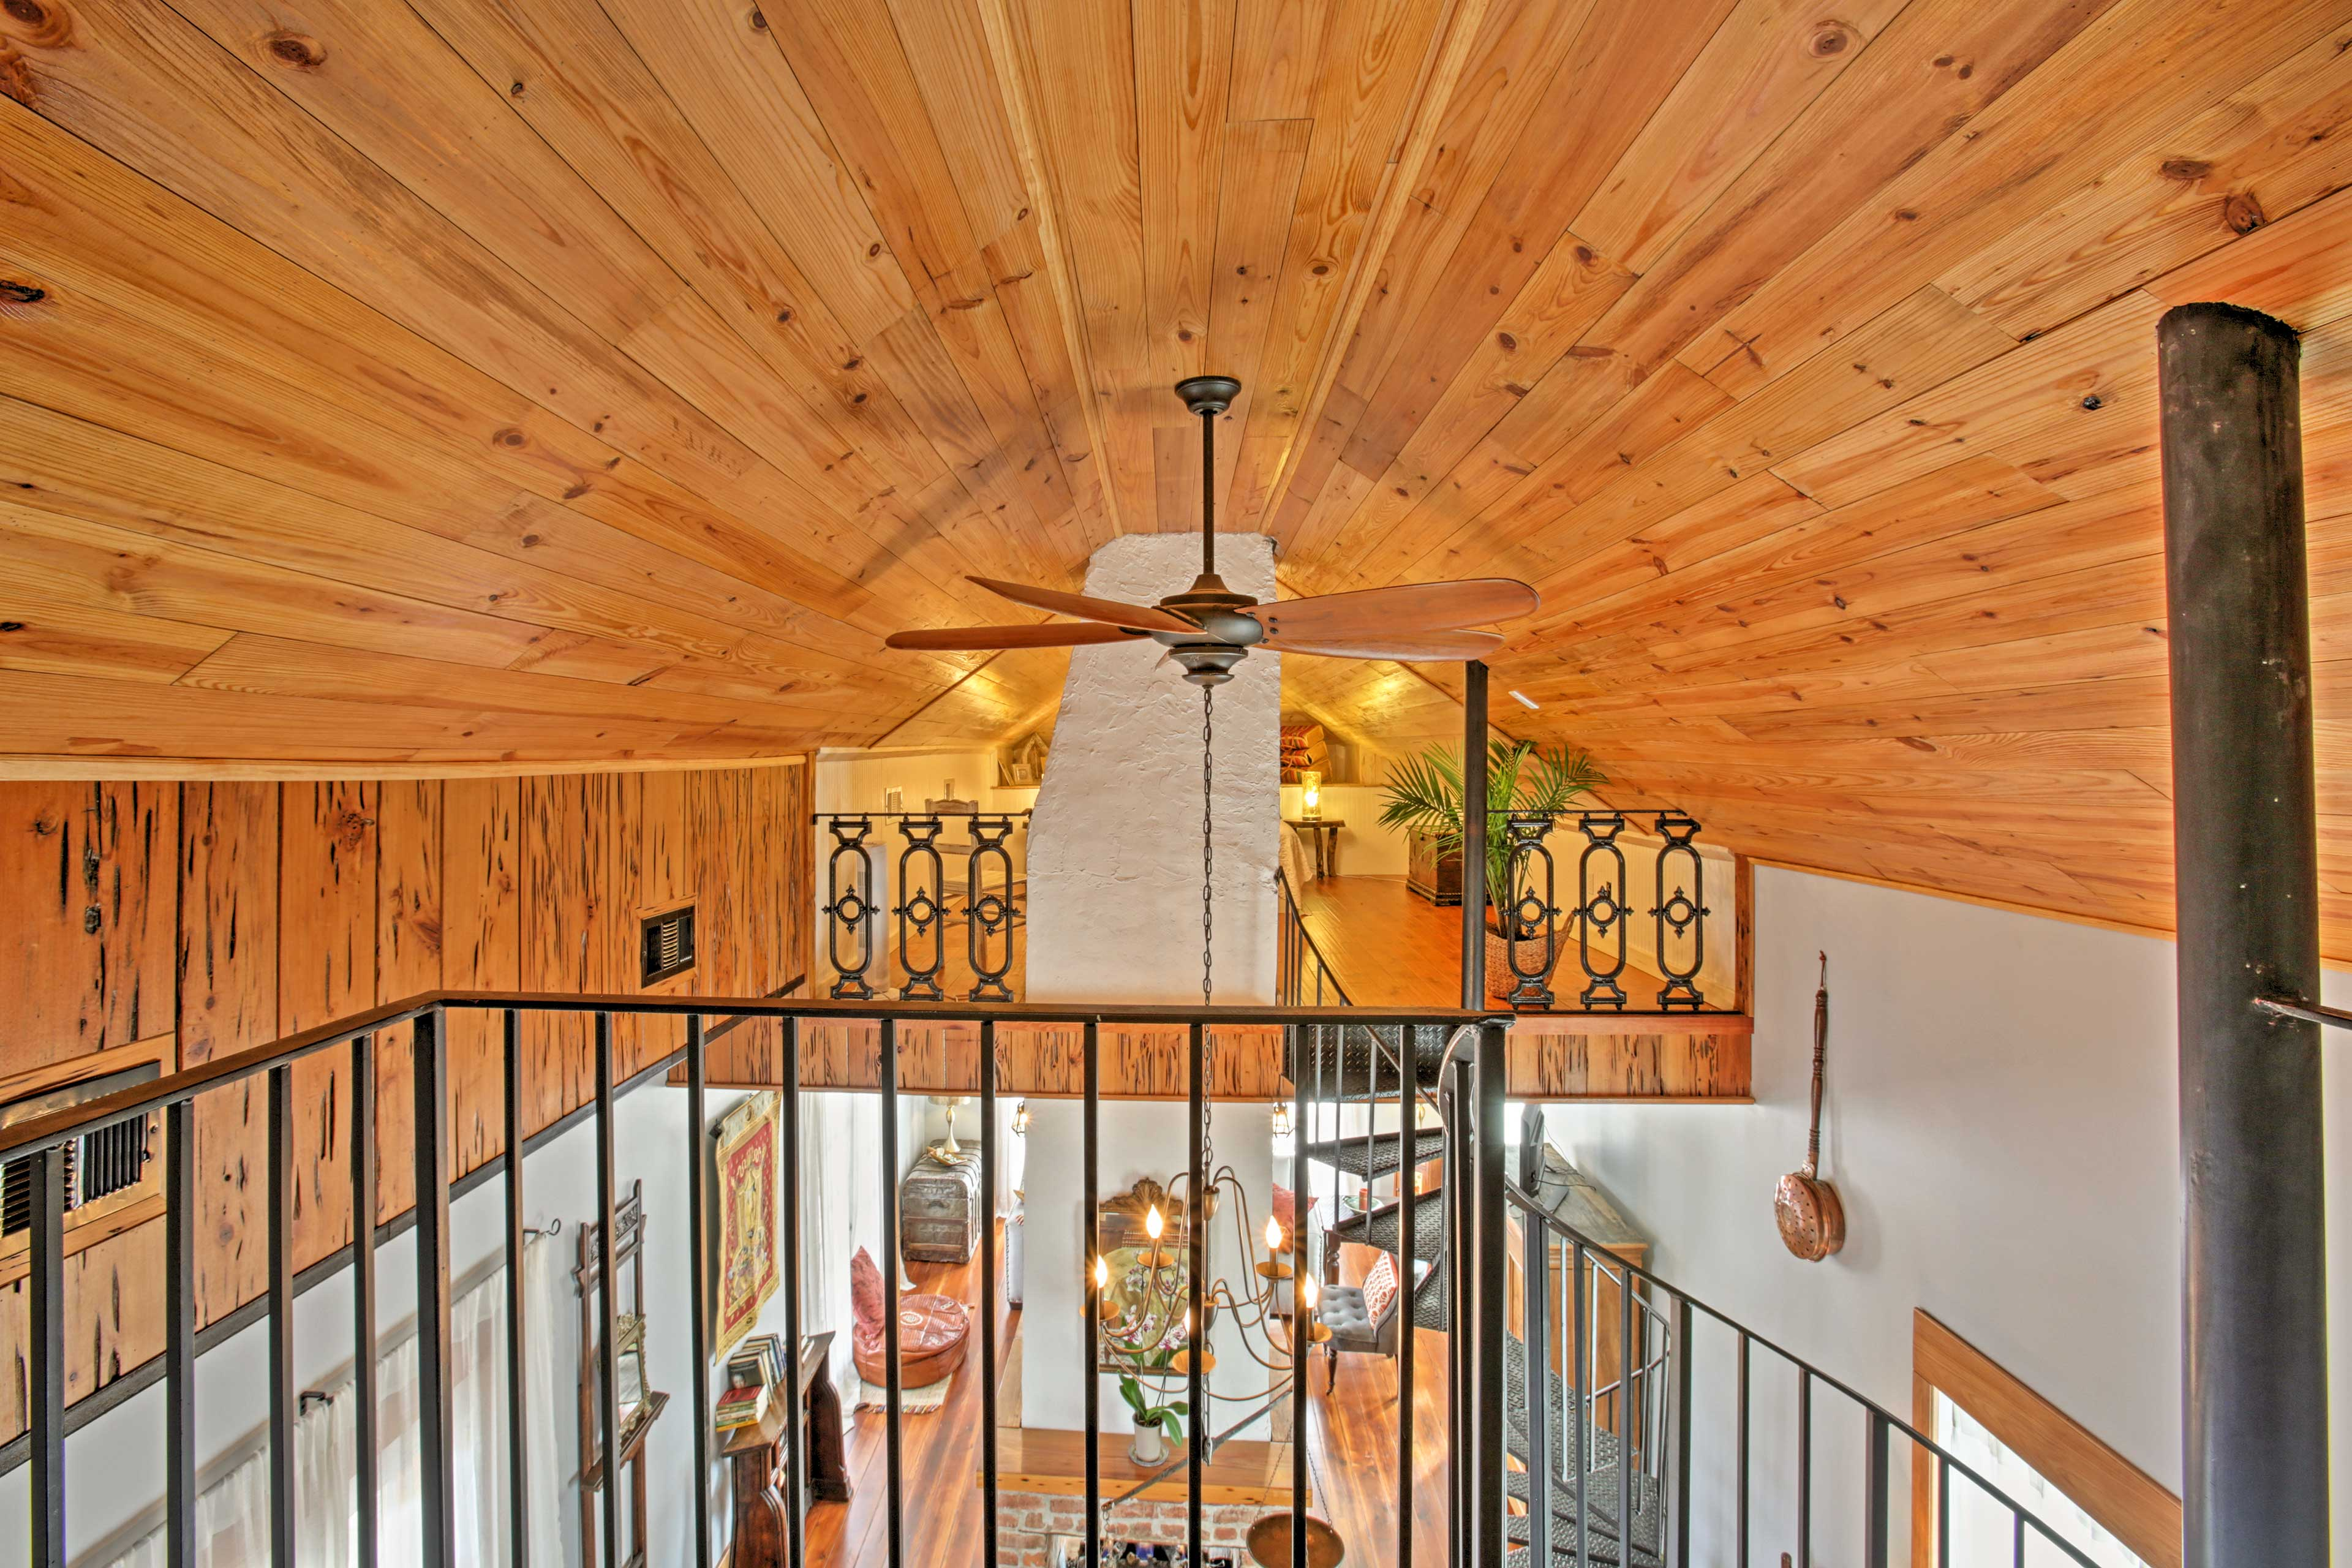 Both of the bedrooms balconies feature birds-eye views of the main living area.